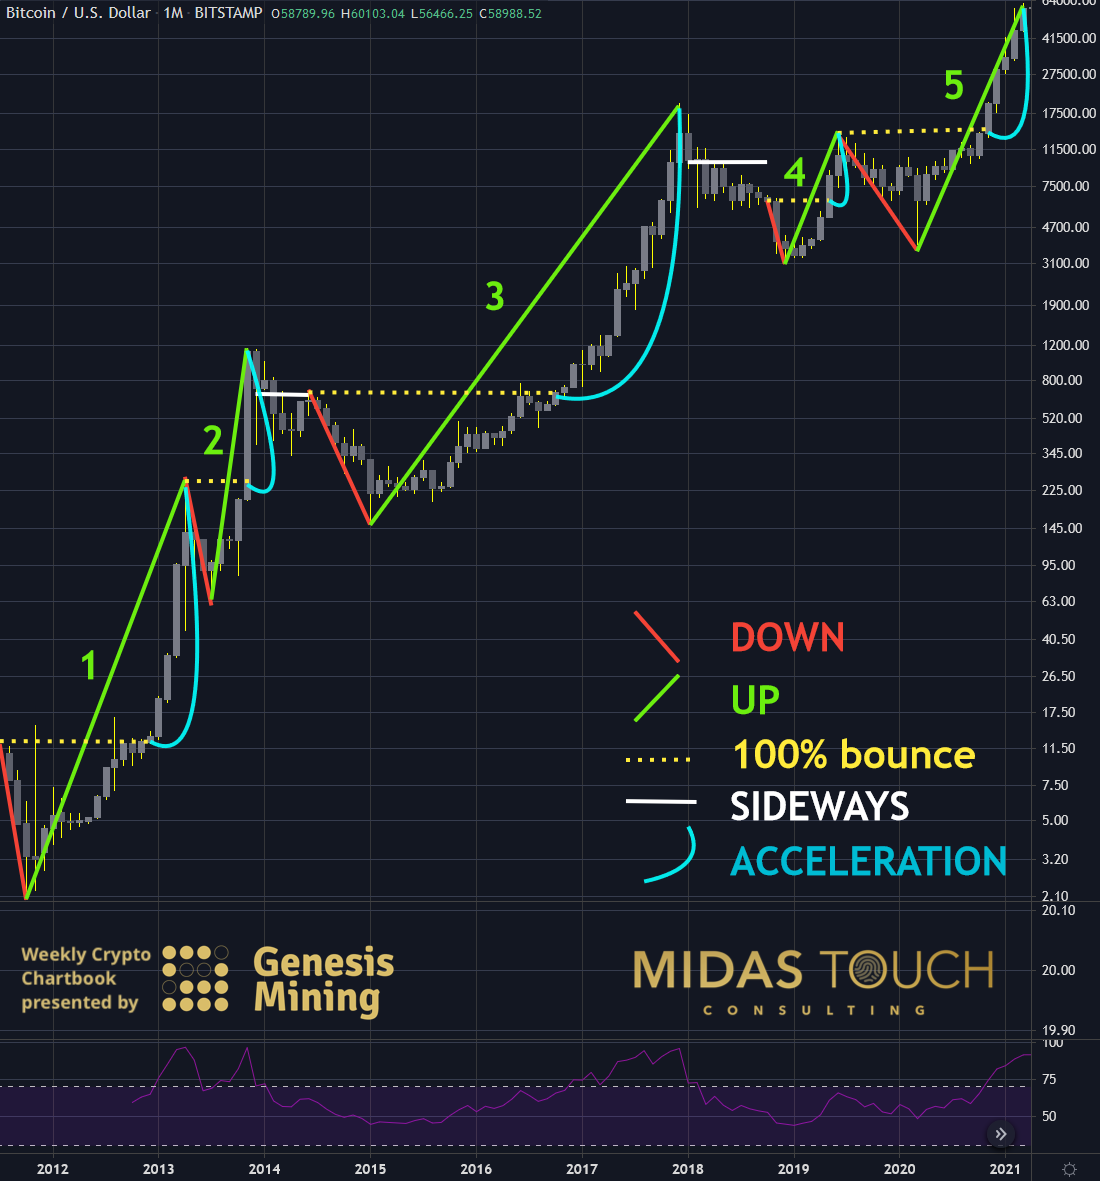 Bitcoin in US Dollar, monthly chart as of April 5th, 2021.